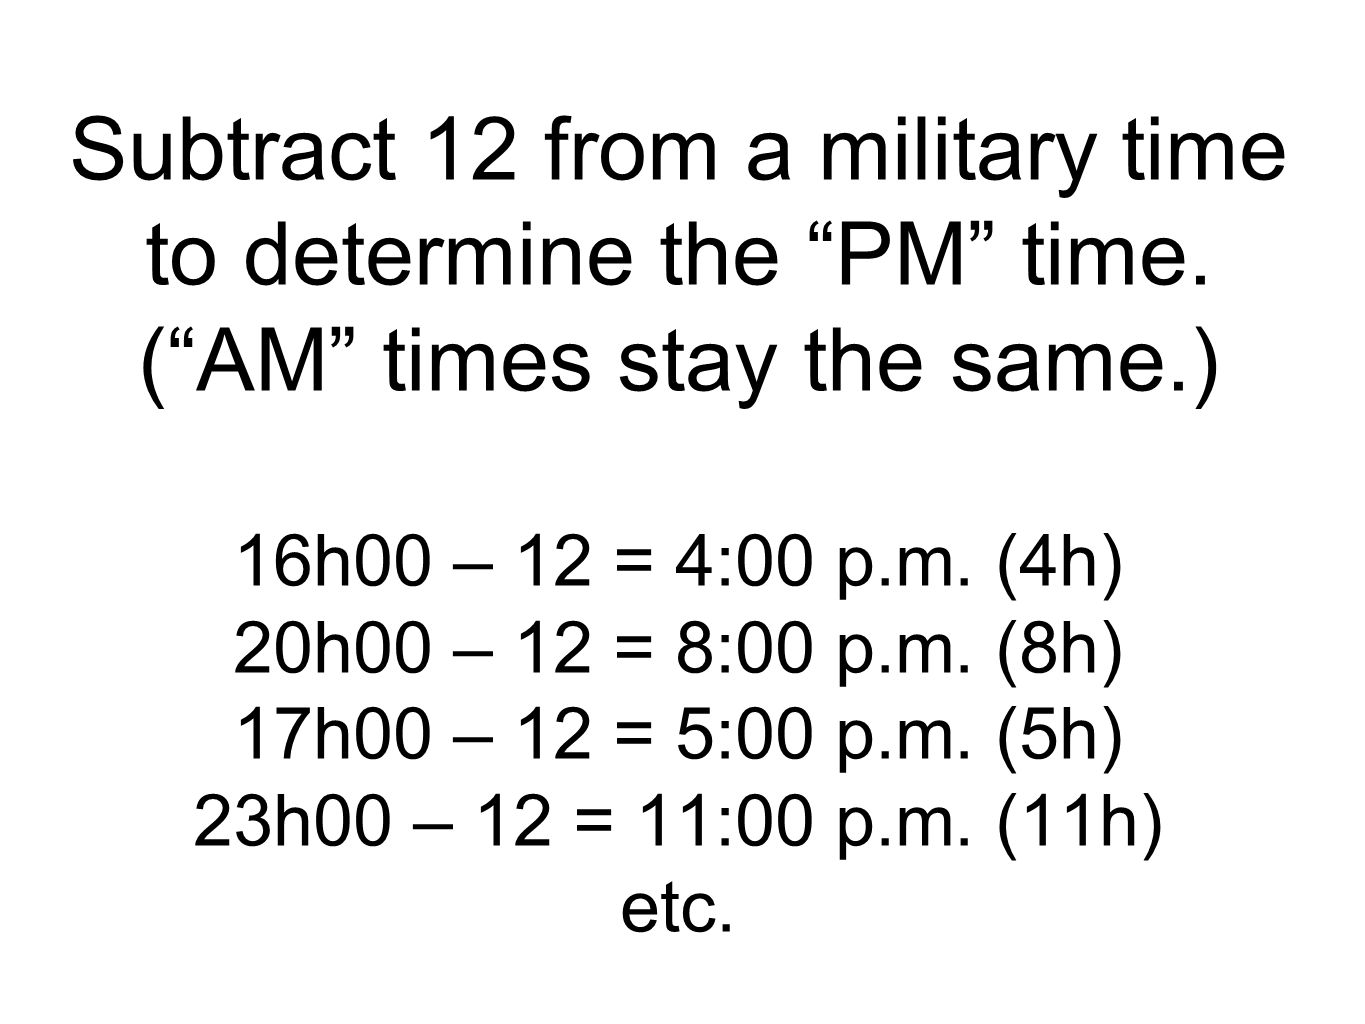 Subtract 12 from a military time to determine the PM time